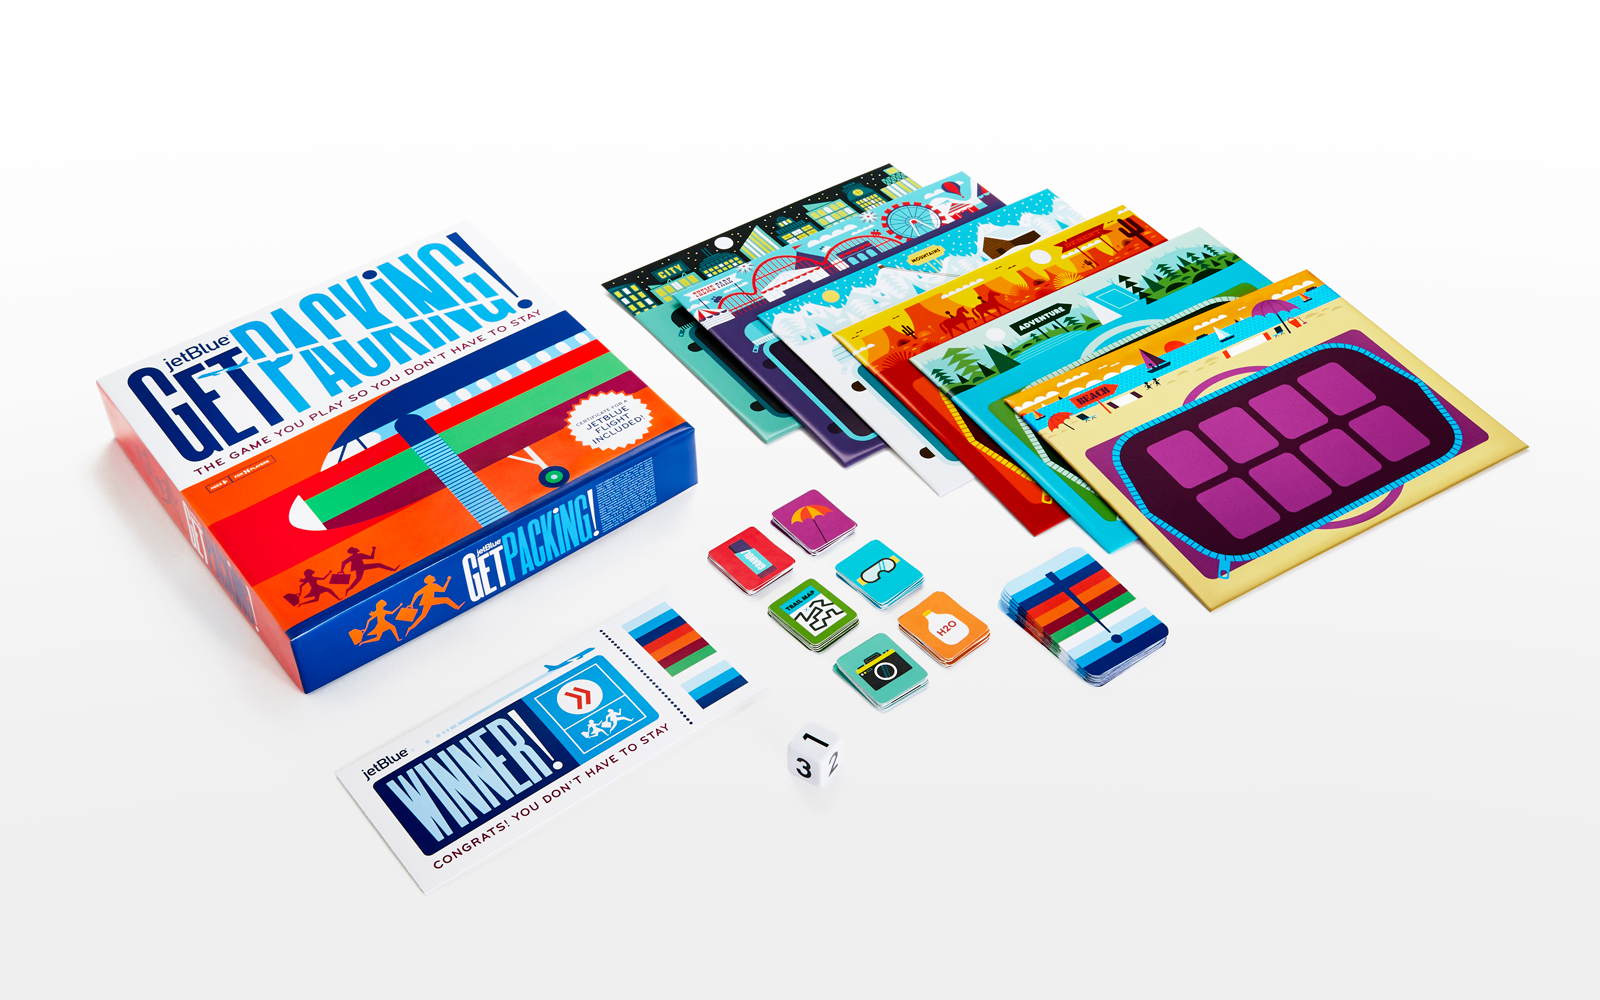 Get Packing board game by JetBlue